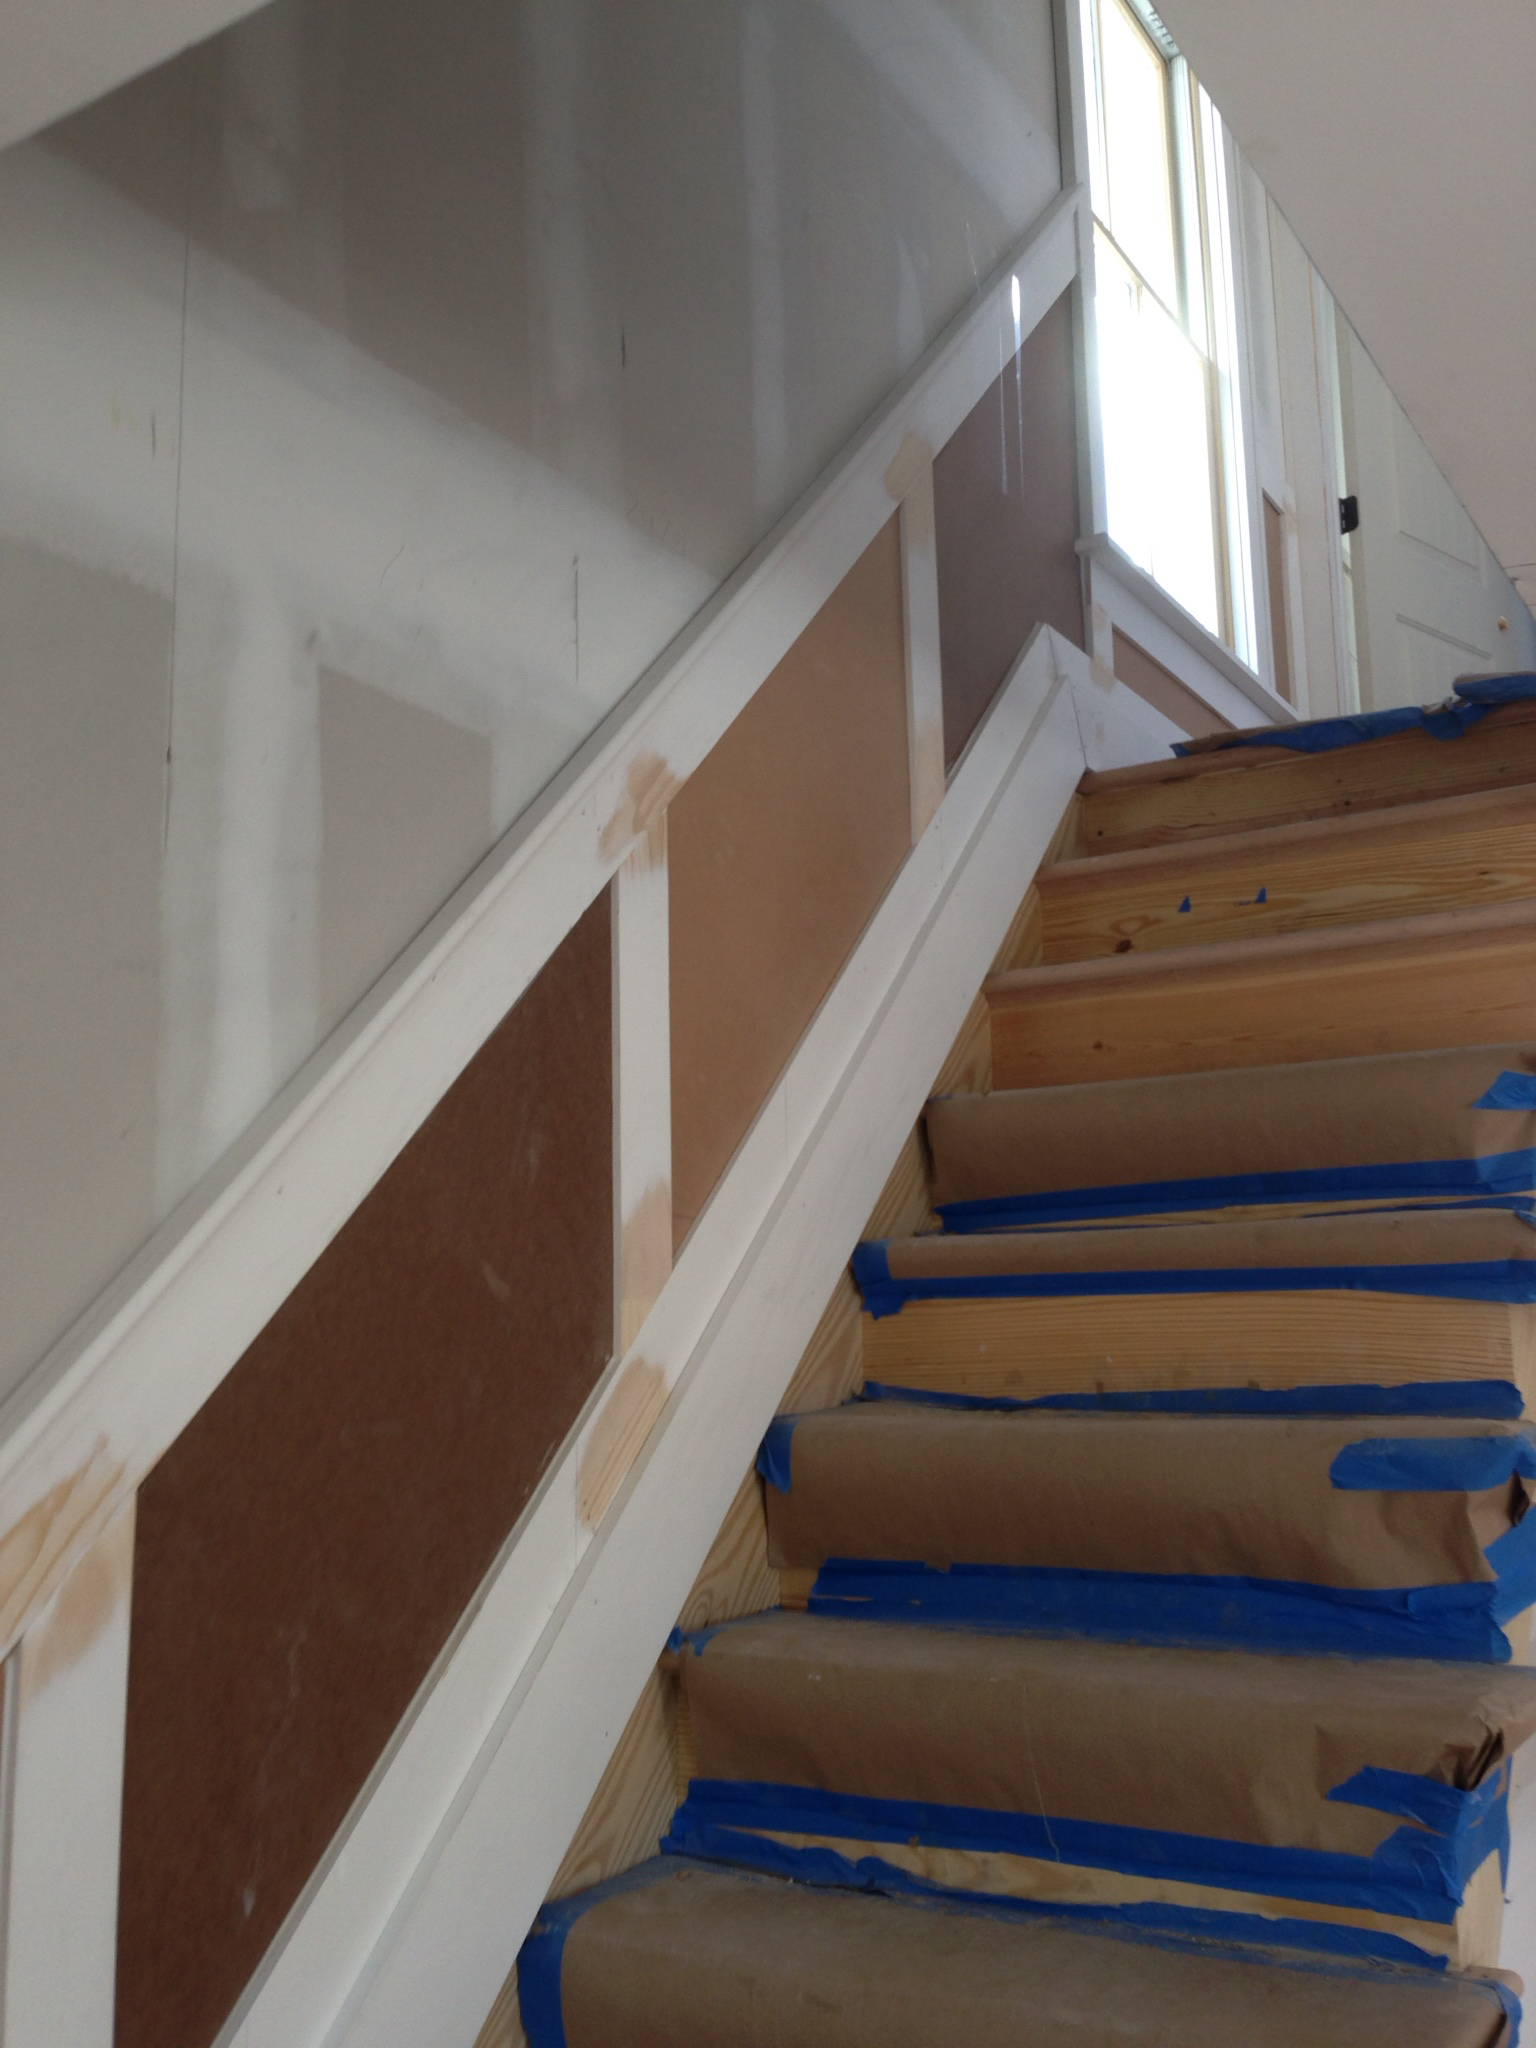 Stairway & Shaker Paneling Being Built.